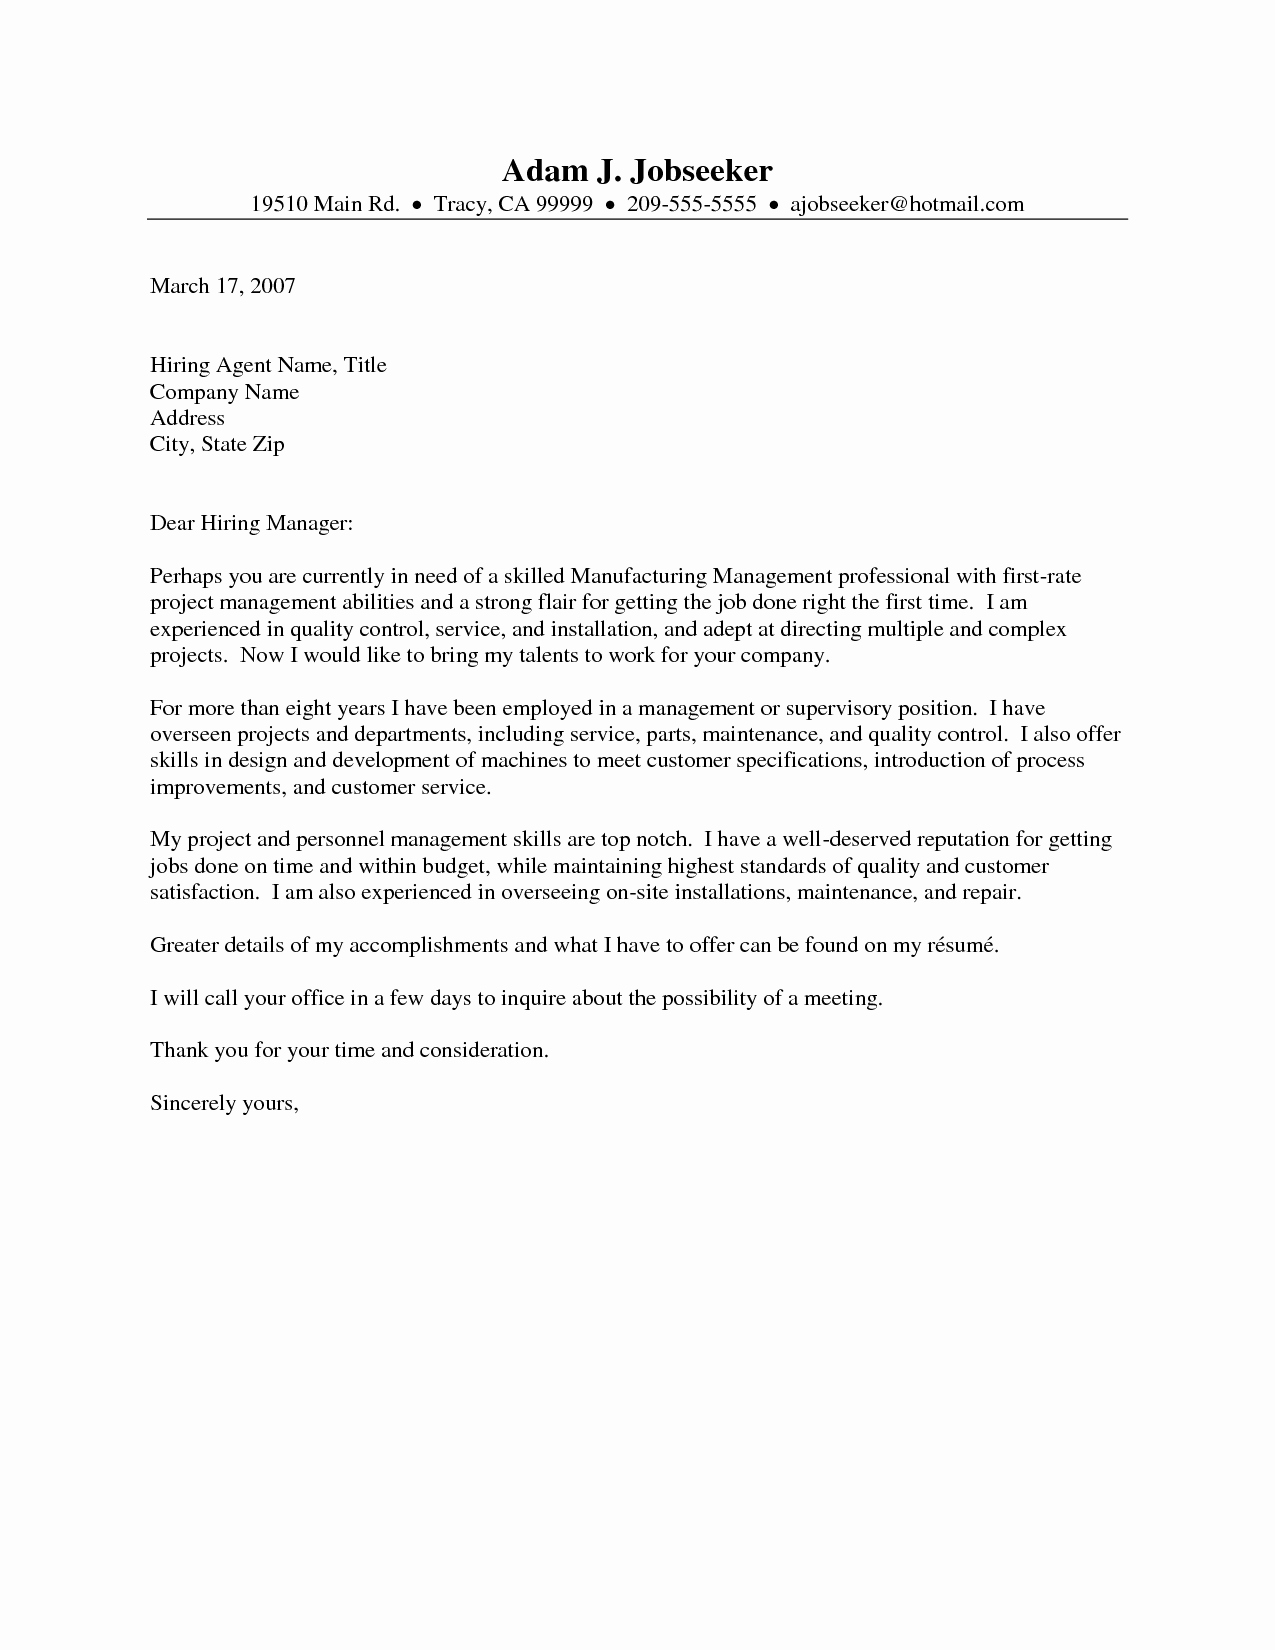 Medical Scribe Cover Letter Template - Medical Scribe Cover Letter Template Best Medical assistant Cover